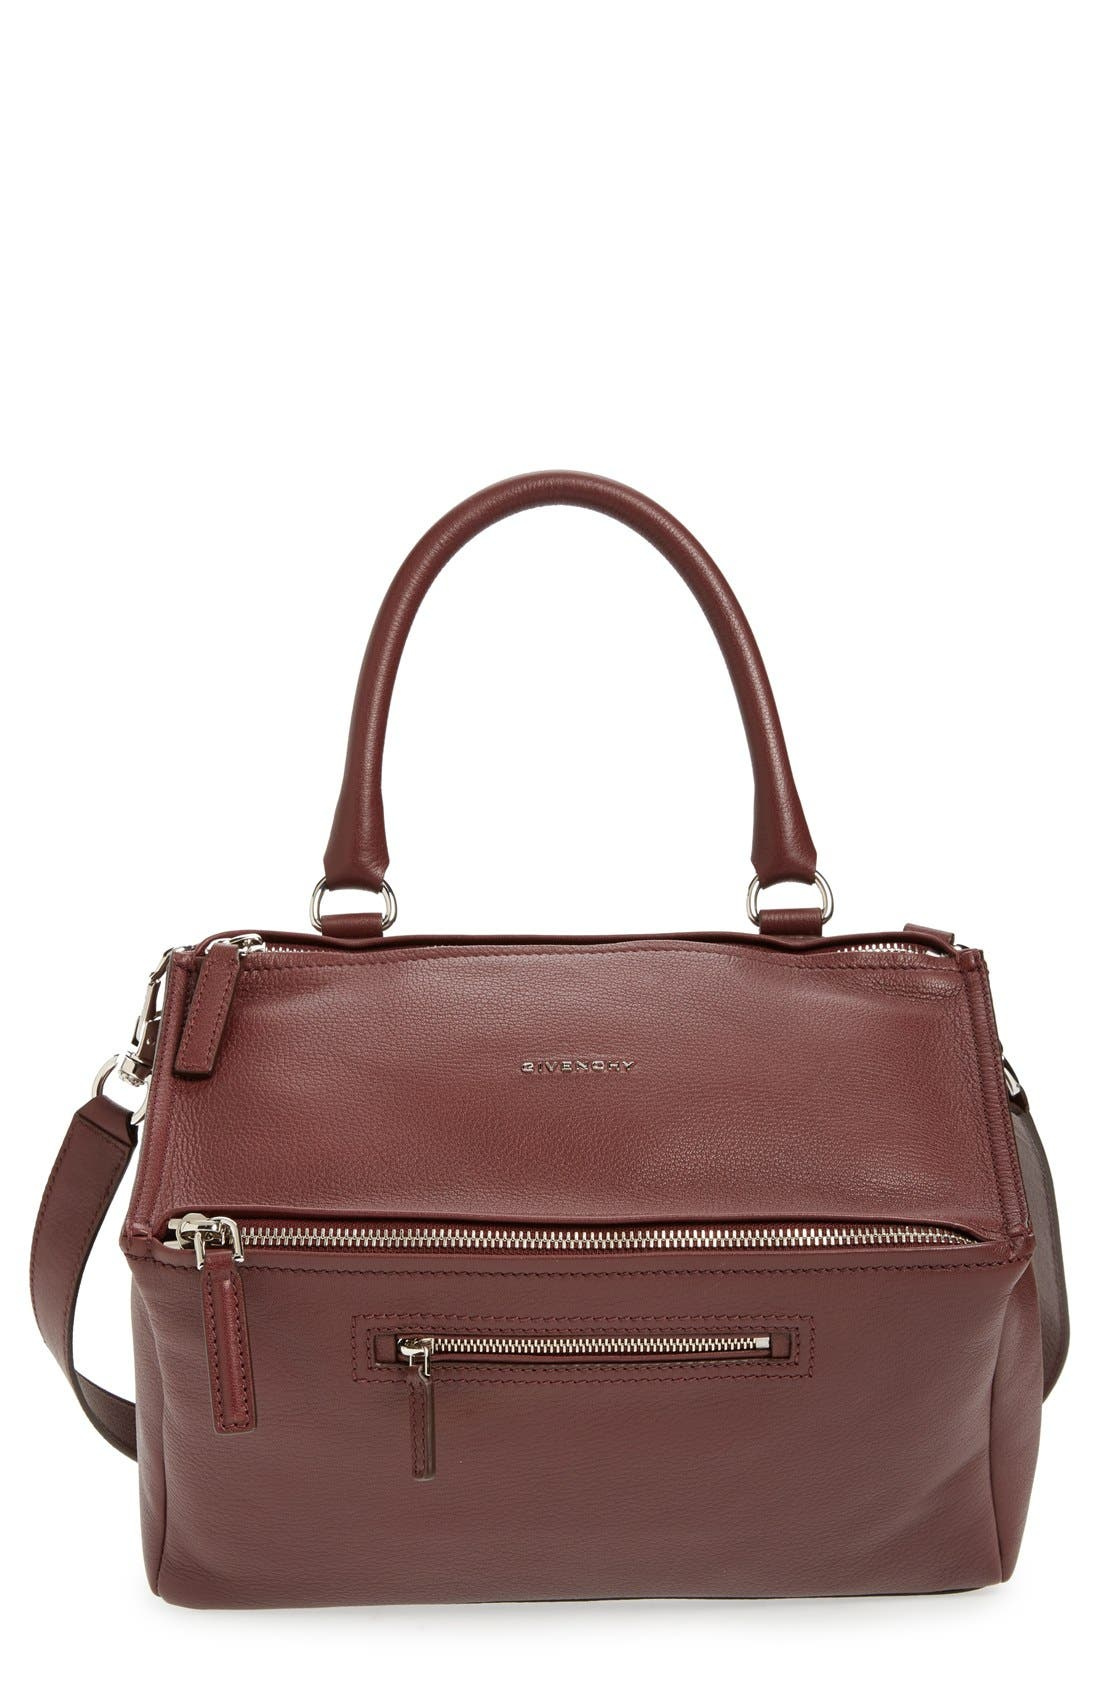 Alternate Image 1 Selected - Givenchy 'Medium Pandora' Sugar Leather Satchel